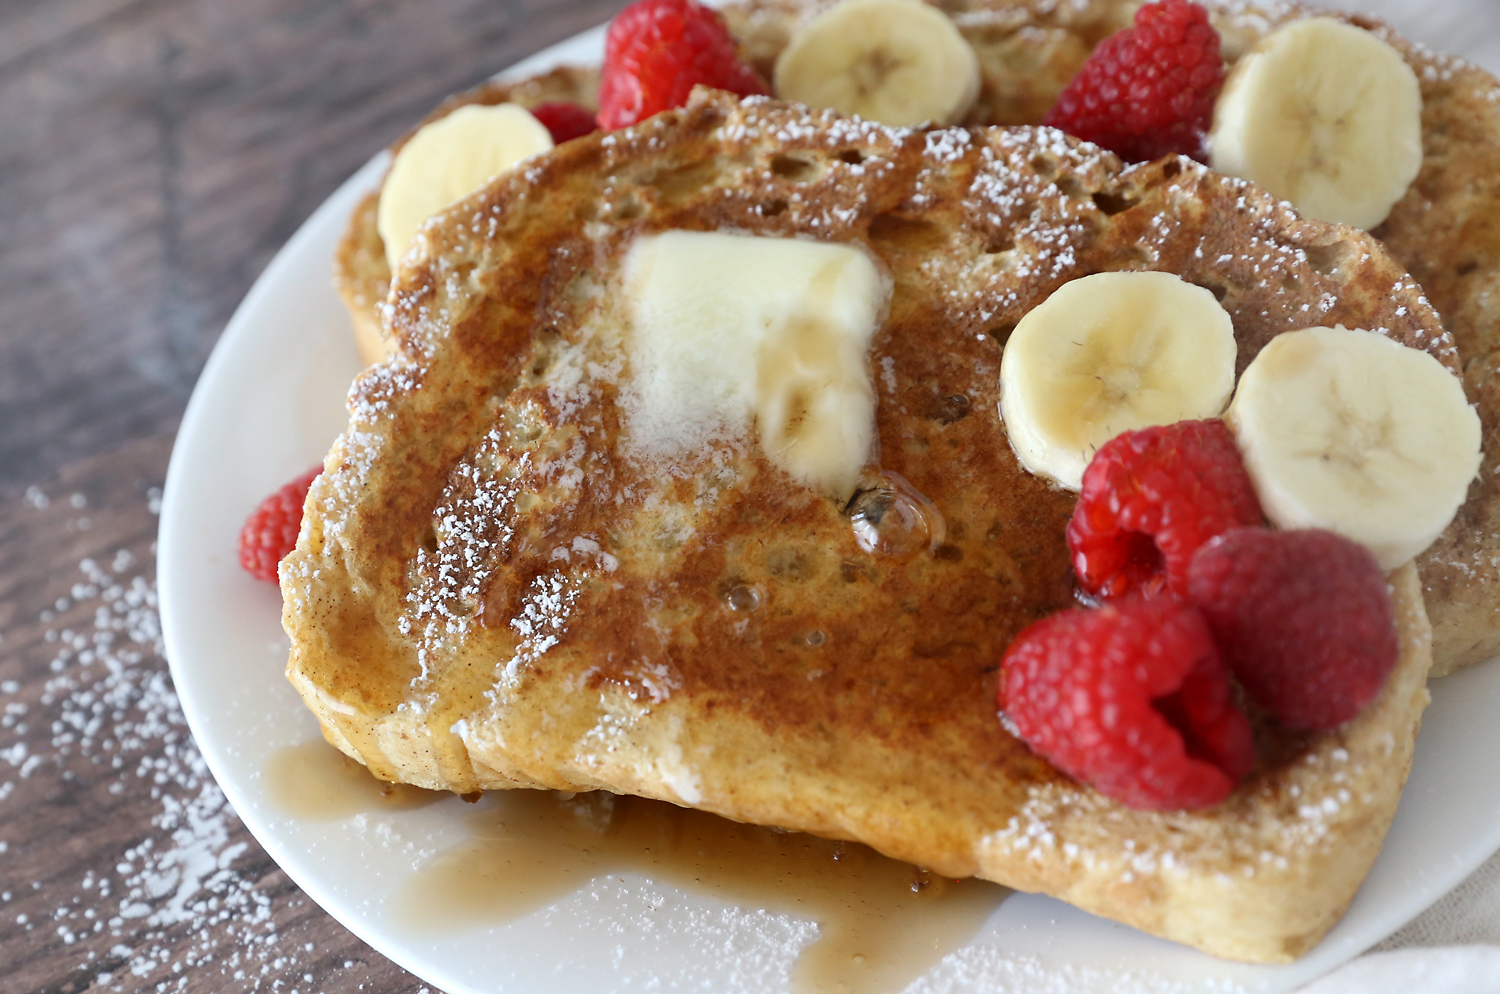 French toast with butter and syrup on a plate